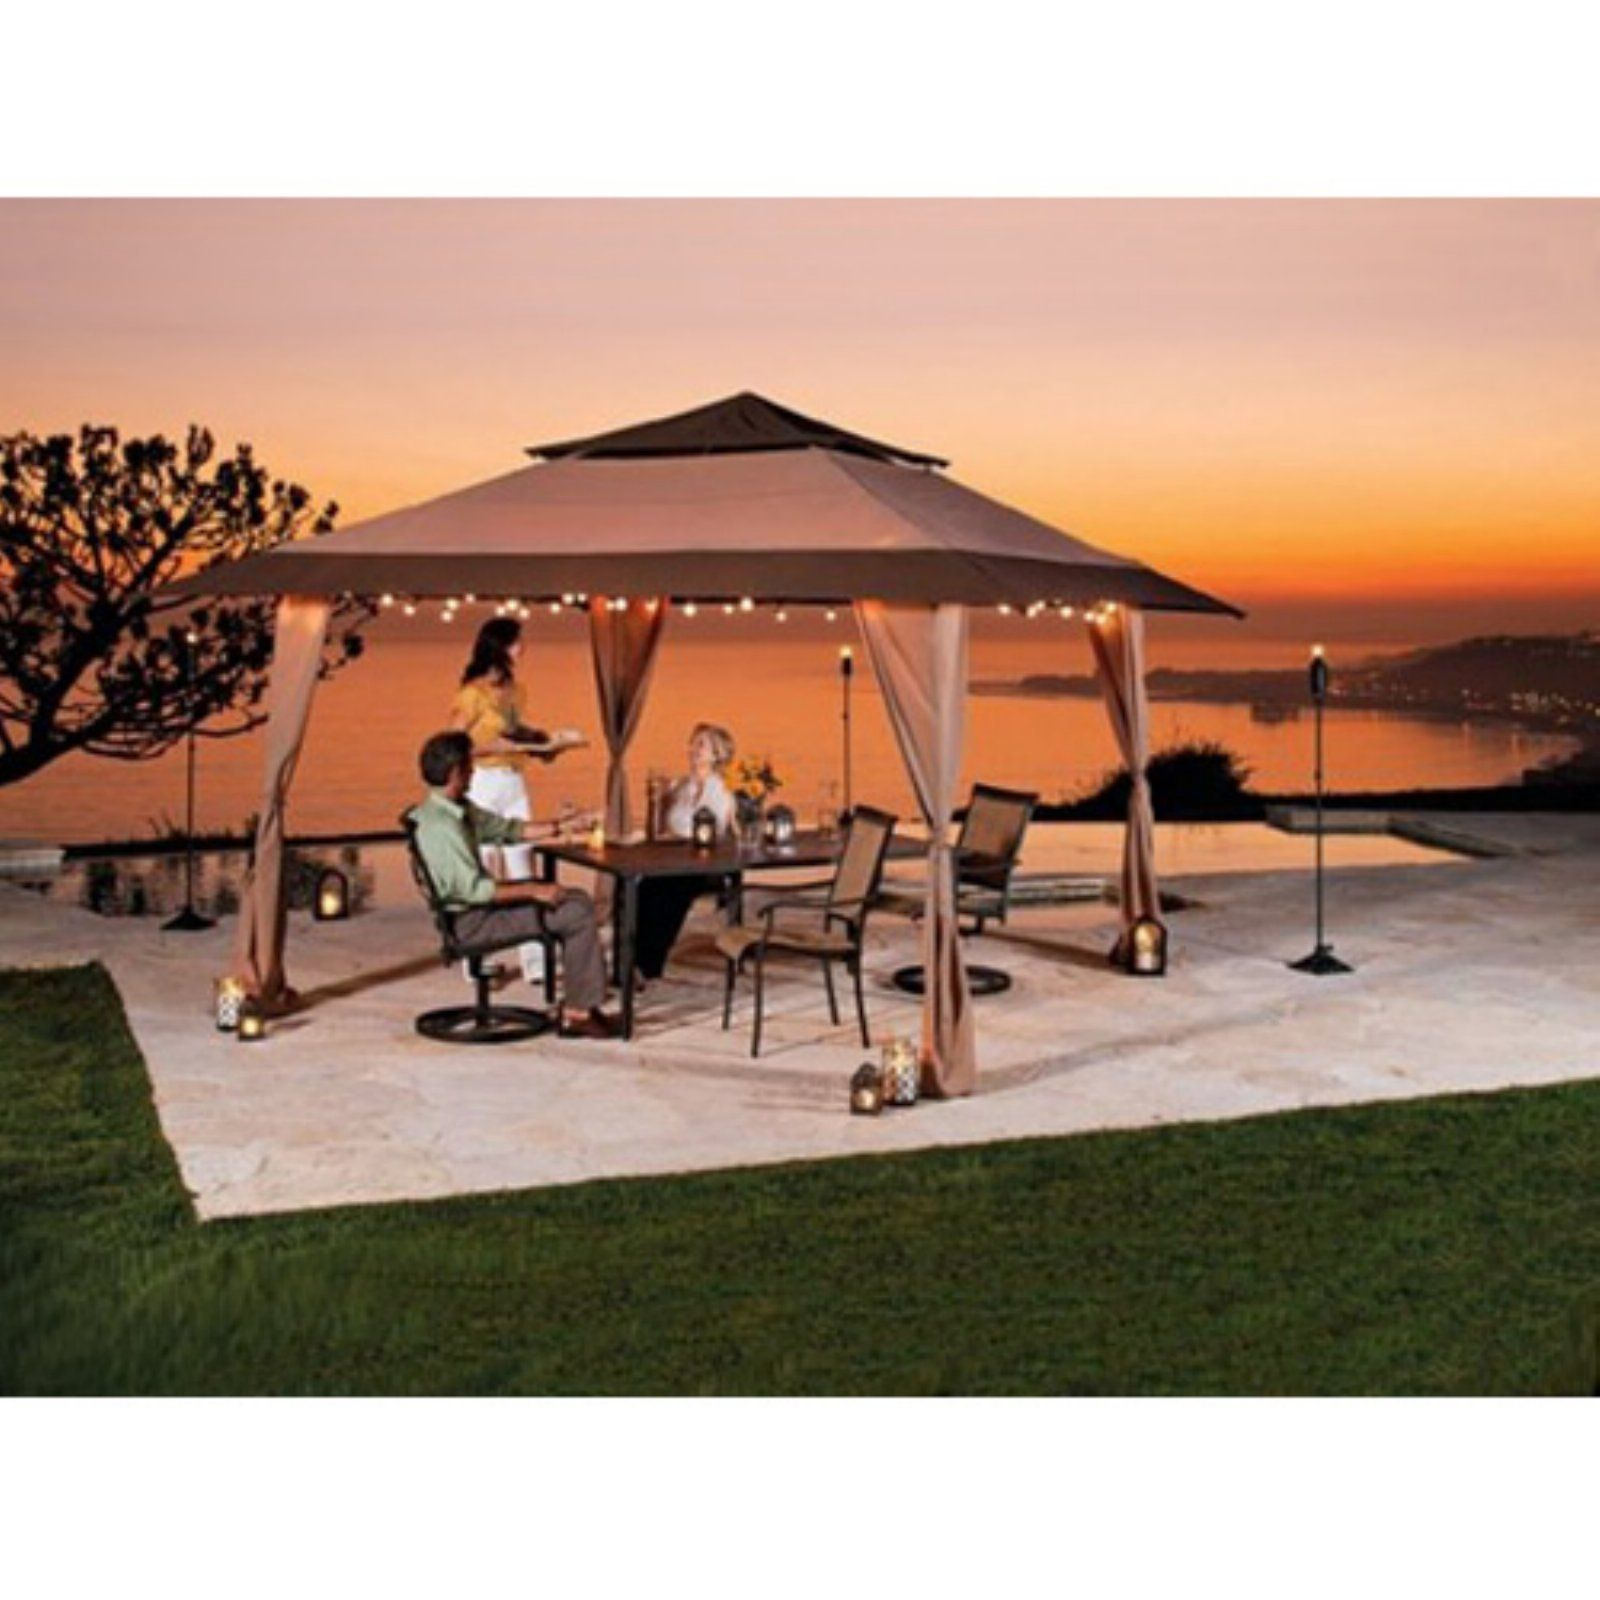 E-Z Up 13 x 13 Pagoda Gazebo Canopy  sc 1 st  Pinterest & E-Z Up 13 x 13 Pagoda Gazebo Canopy | Outdoors | Pinterest ...